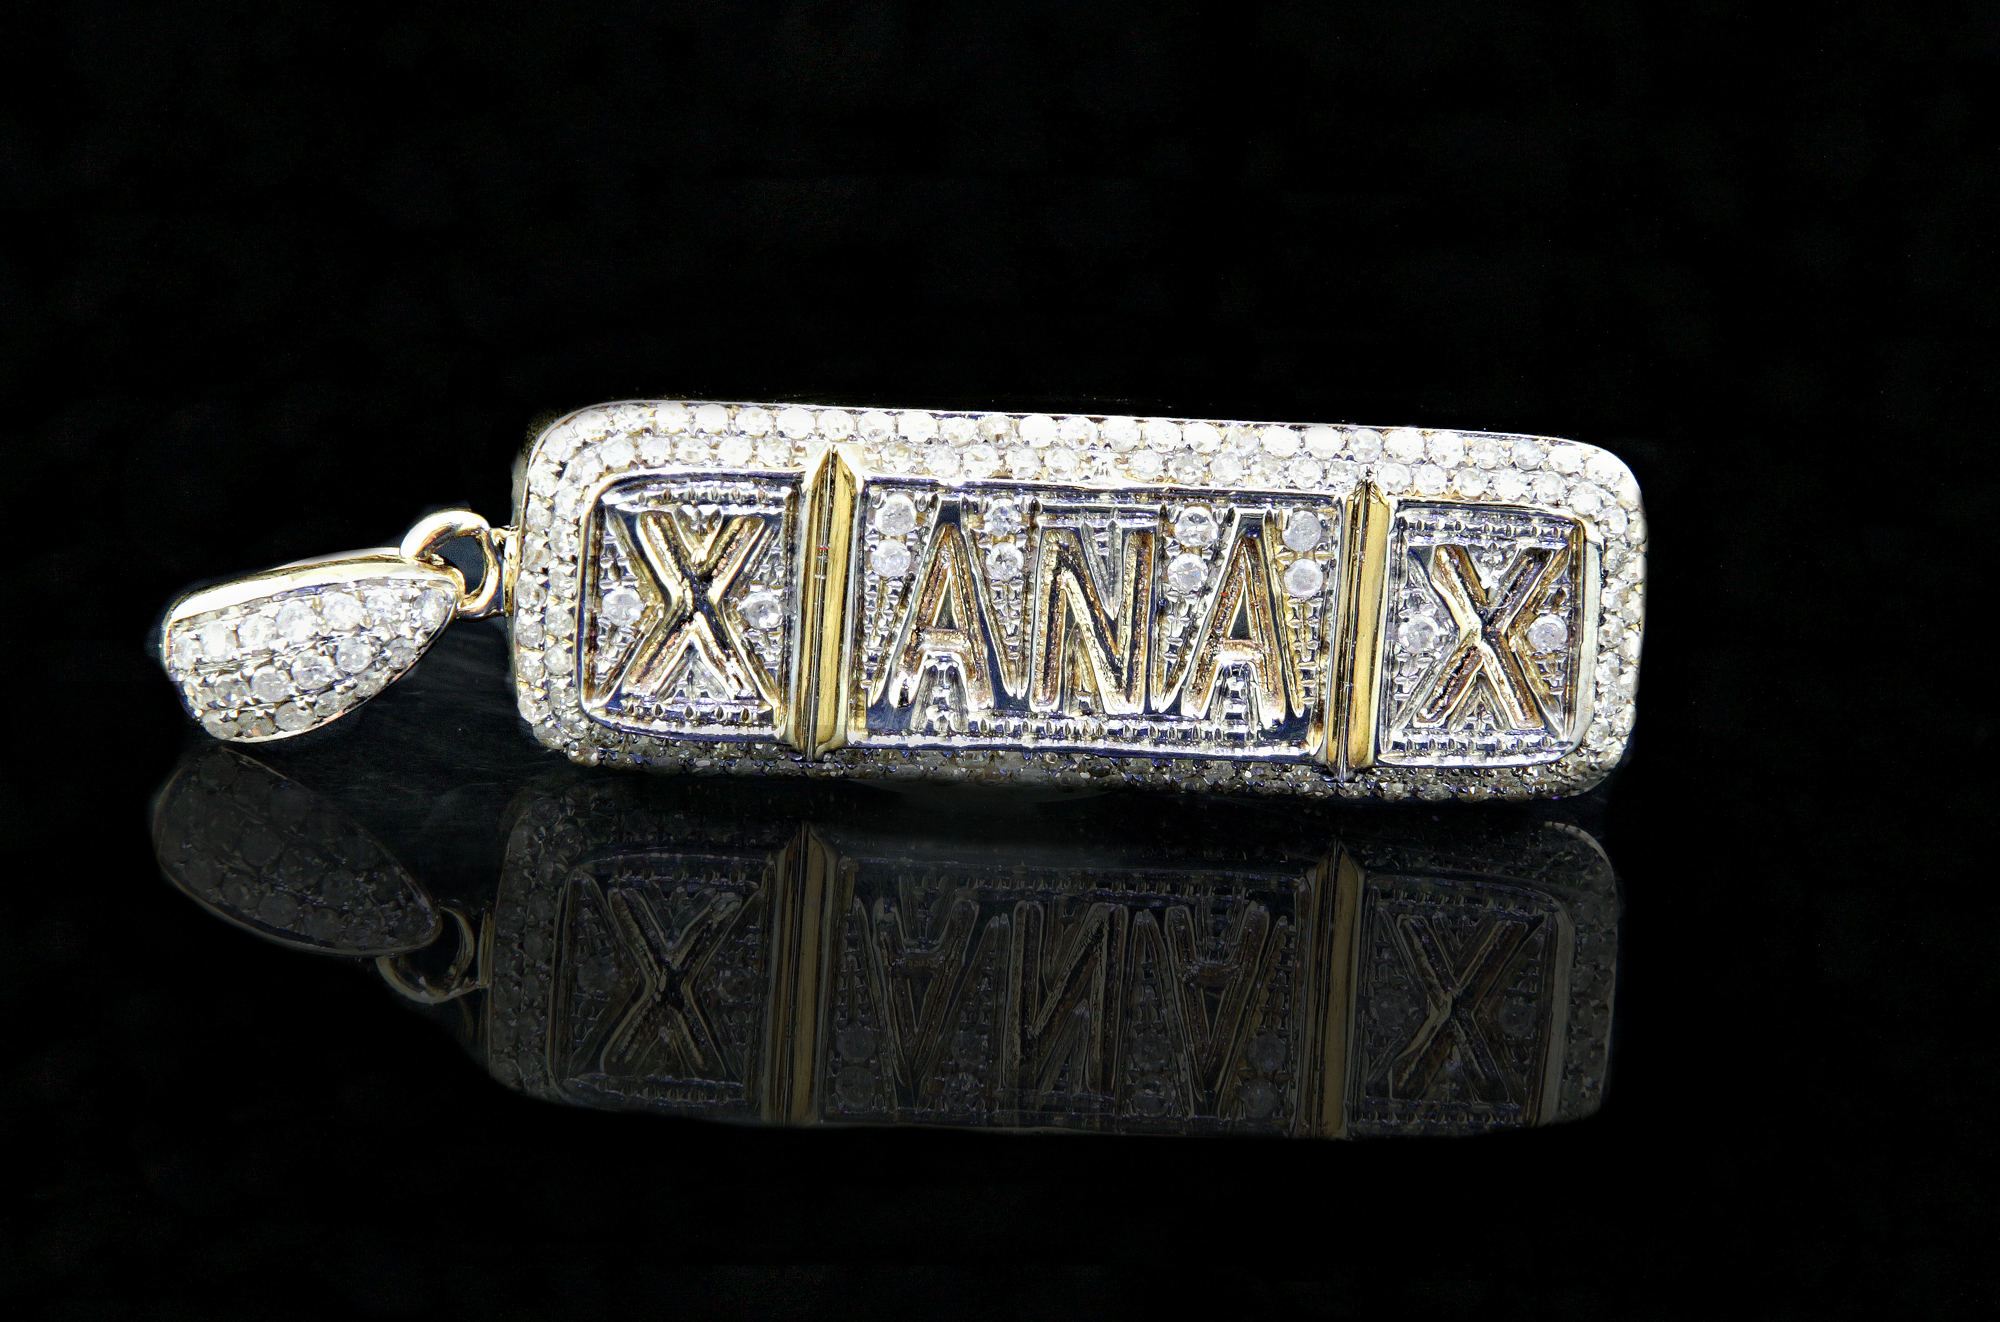 the sweet sounds of xanax pill pop is on the rise